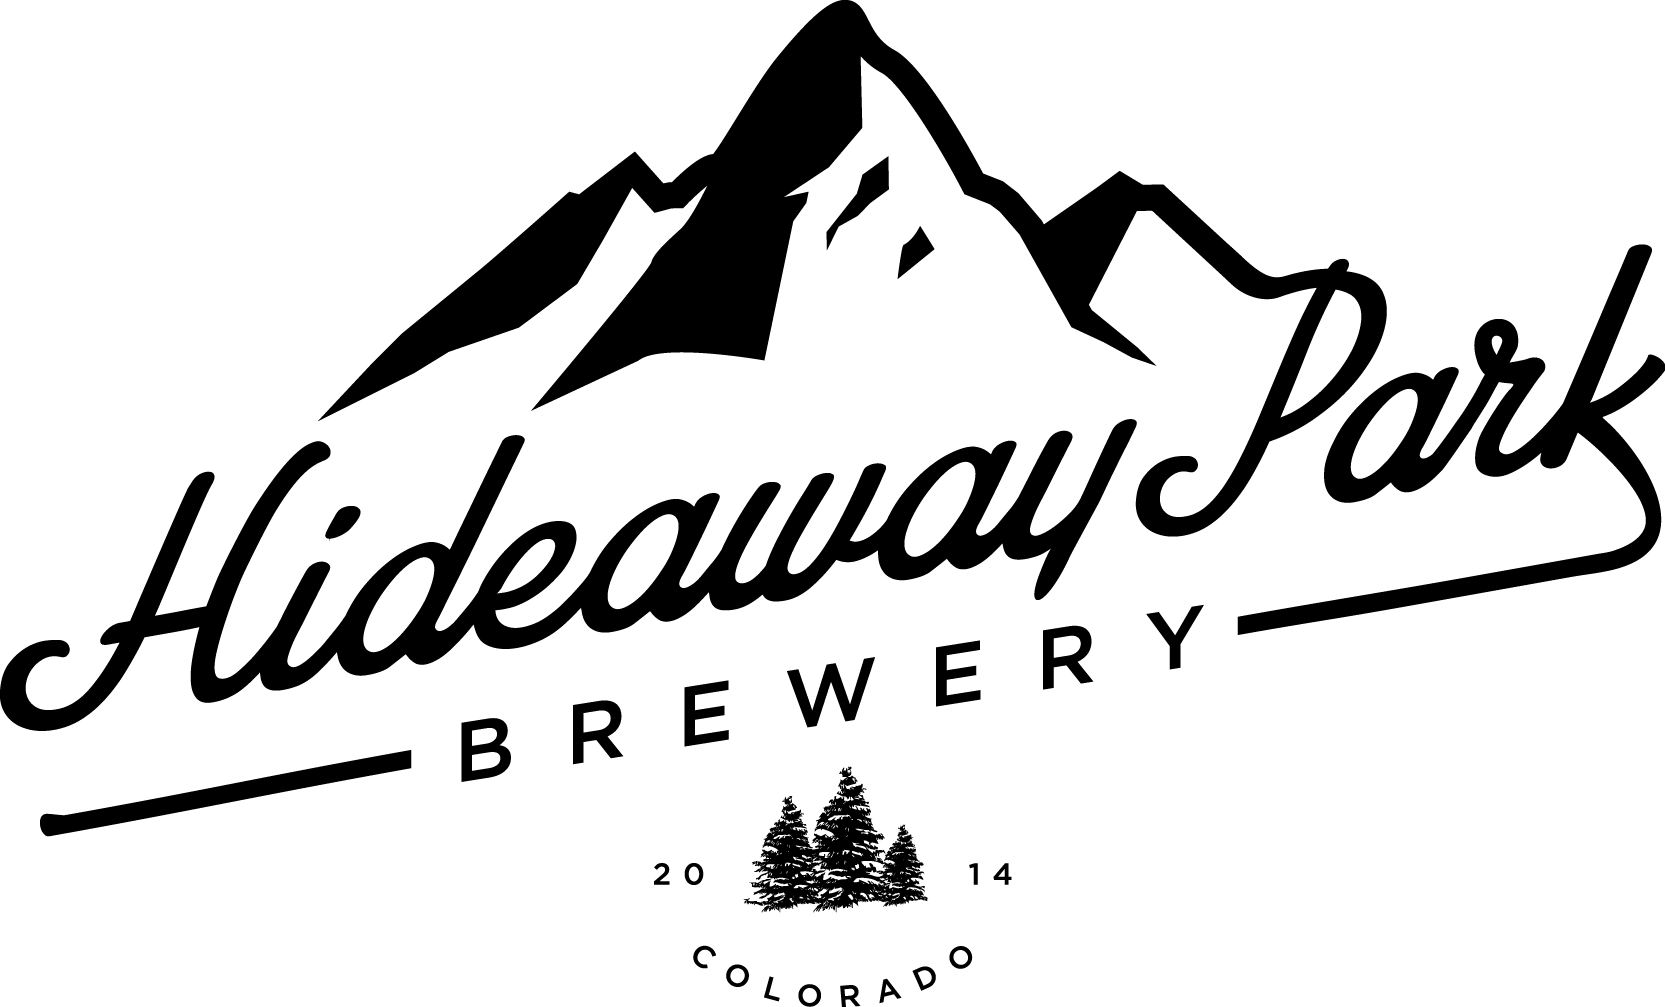 hideaway_park_brewery_logo_without_frame_black.png